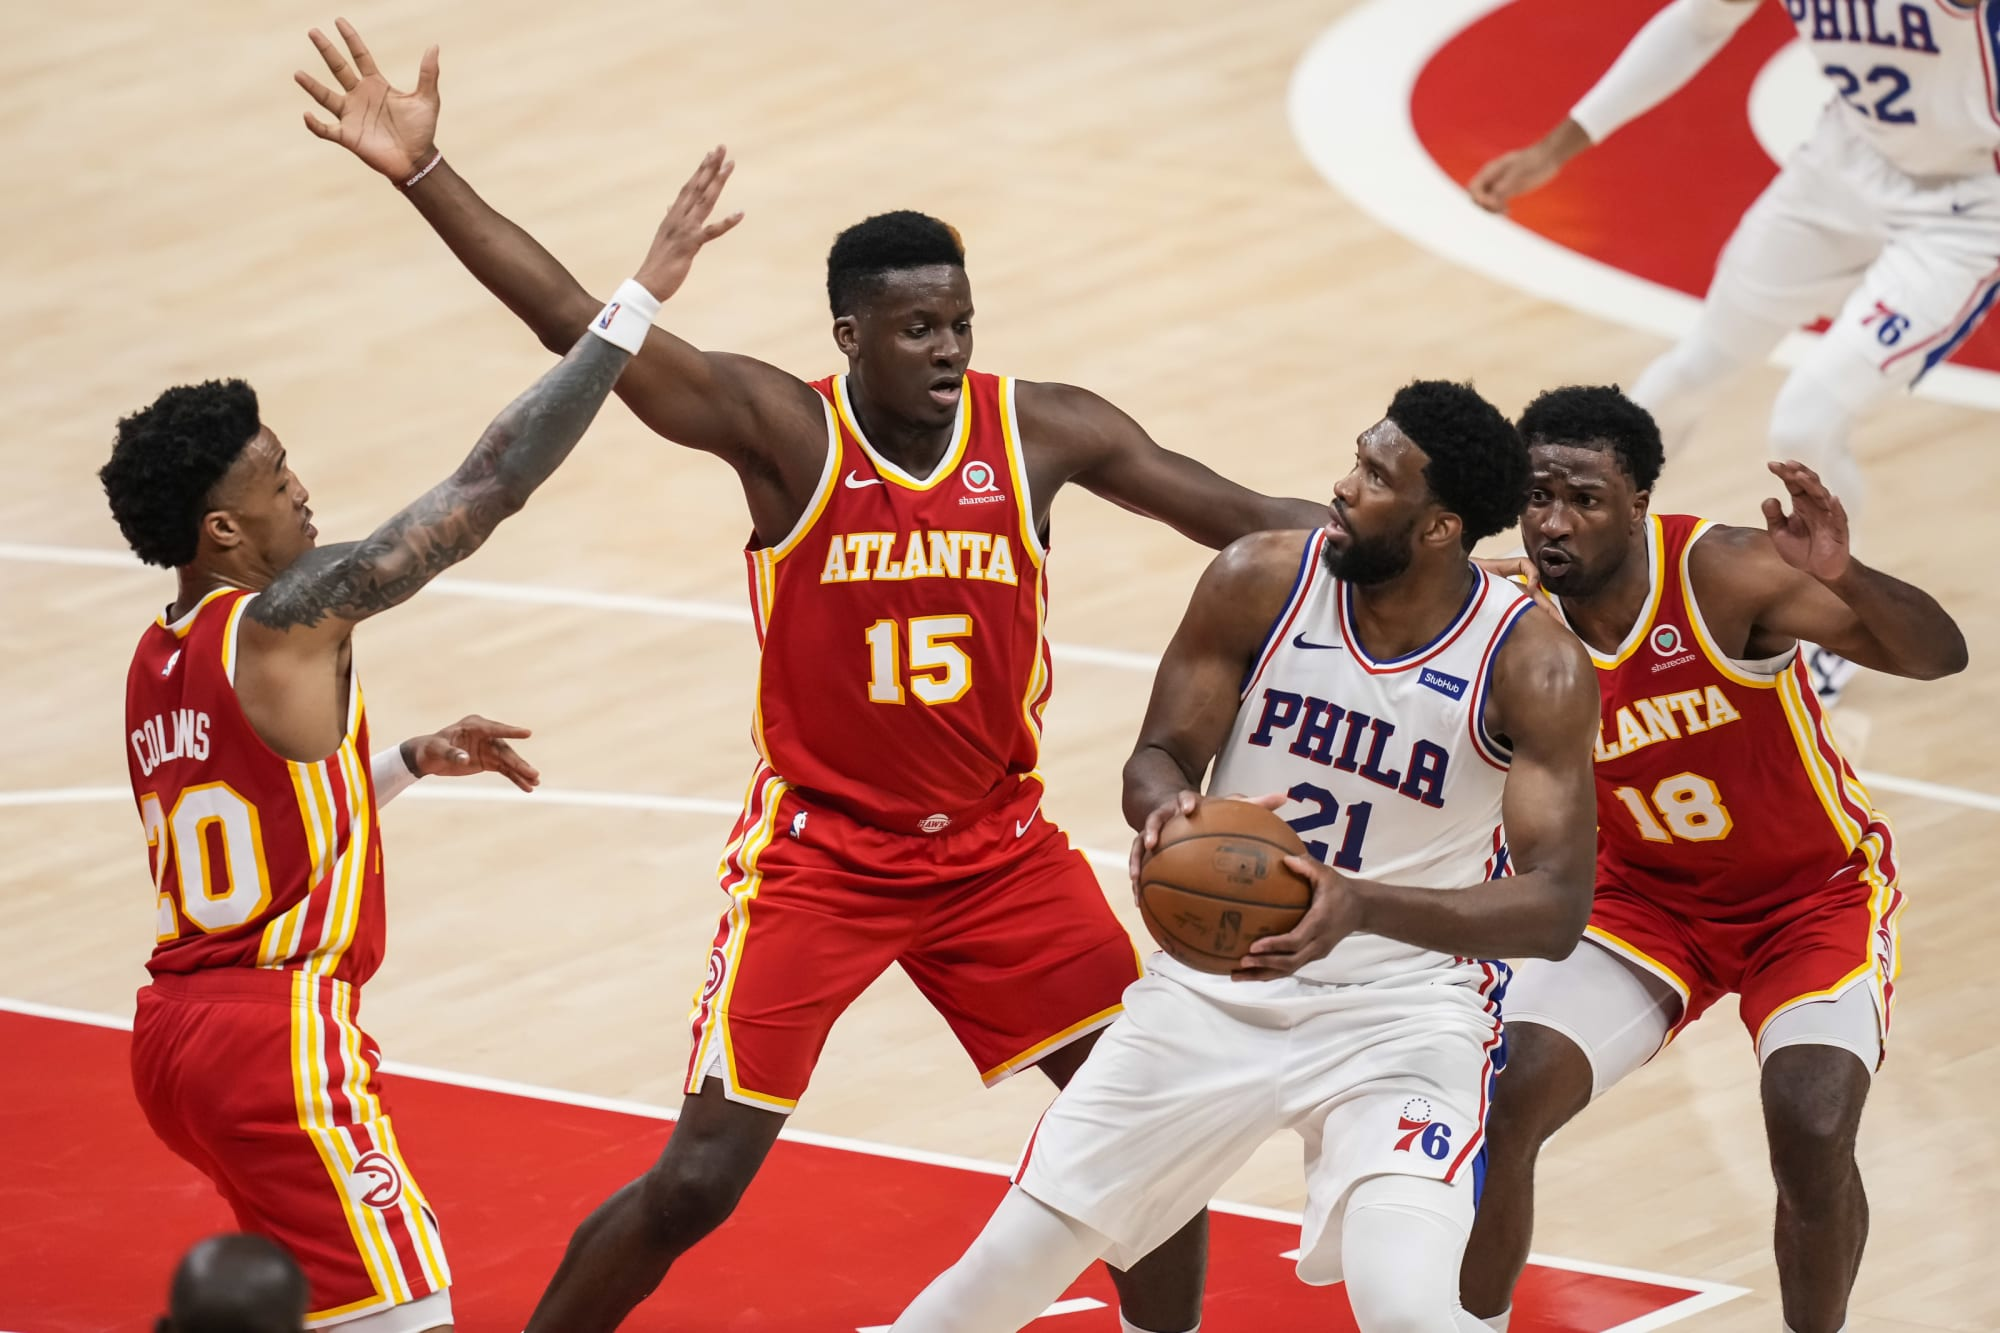 The Atlanta Hawks big men can reclaim the paint with Embiid injured